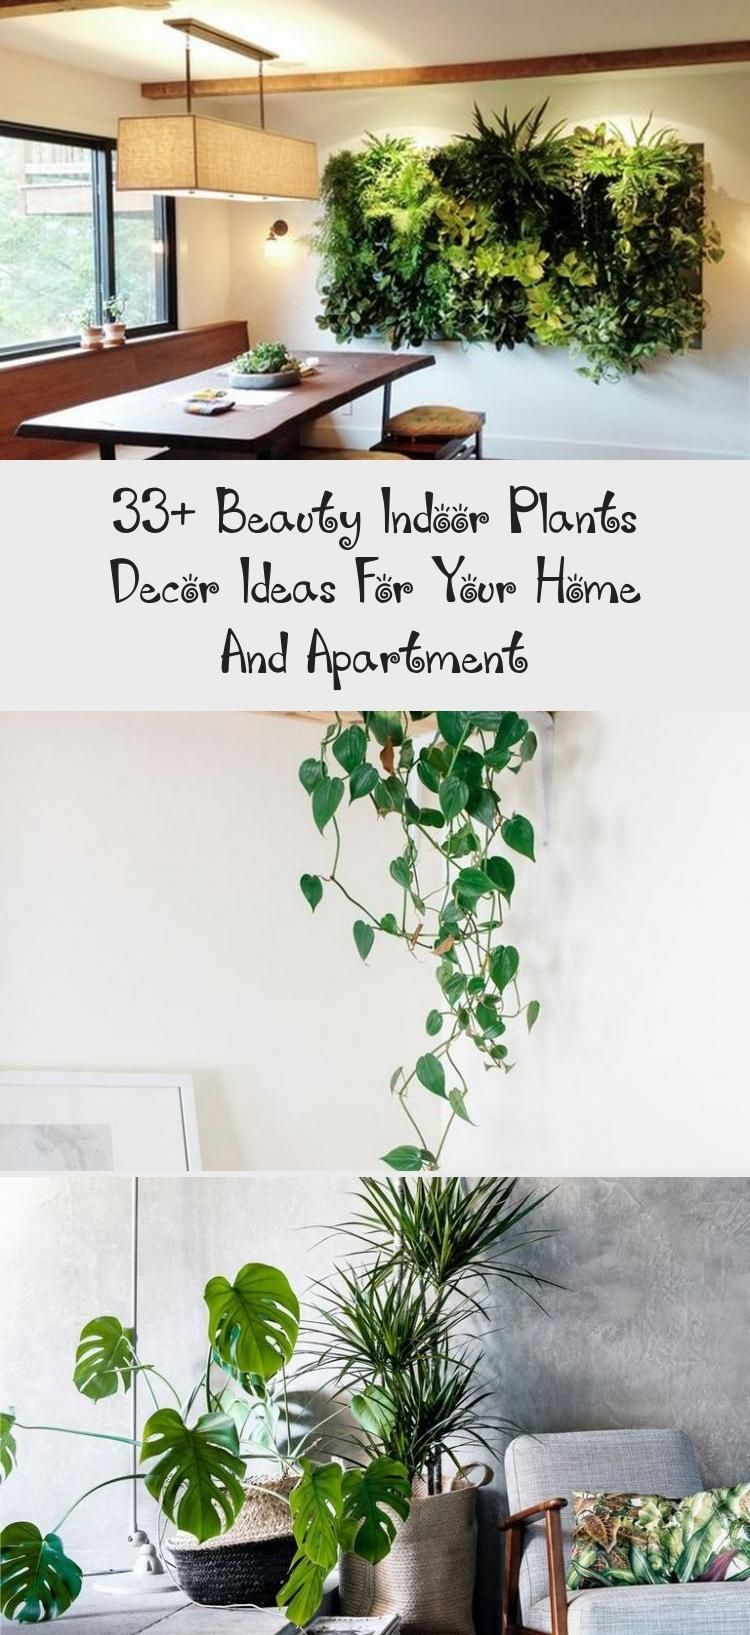 33+ Beauty Indoor Plants Decor Ideas For Your Home And Apartment - GARDEN  33+ Beauty Indoor Plants Decor Ideas For Your Home And Apartment #apartmenttherapy #apartmentliving #Apartment #Beauty #decor #Garden #Home #Ideas #Indoor #Plants